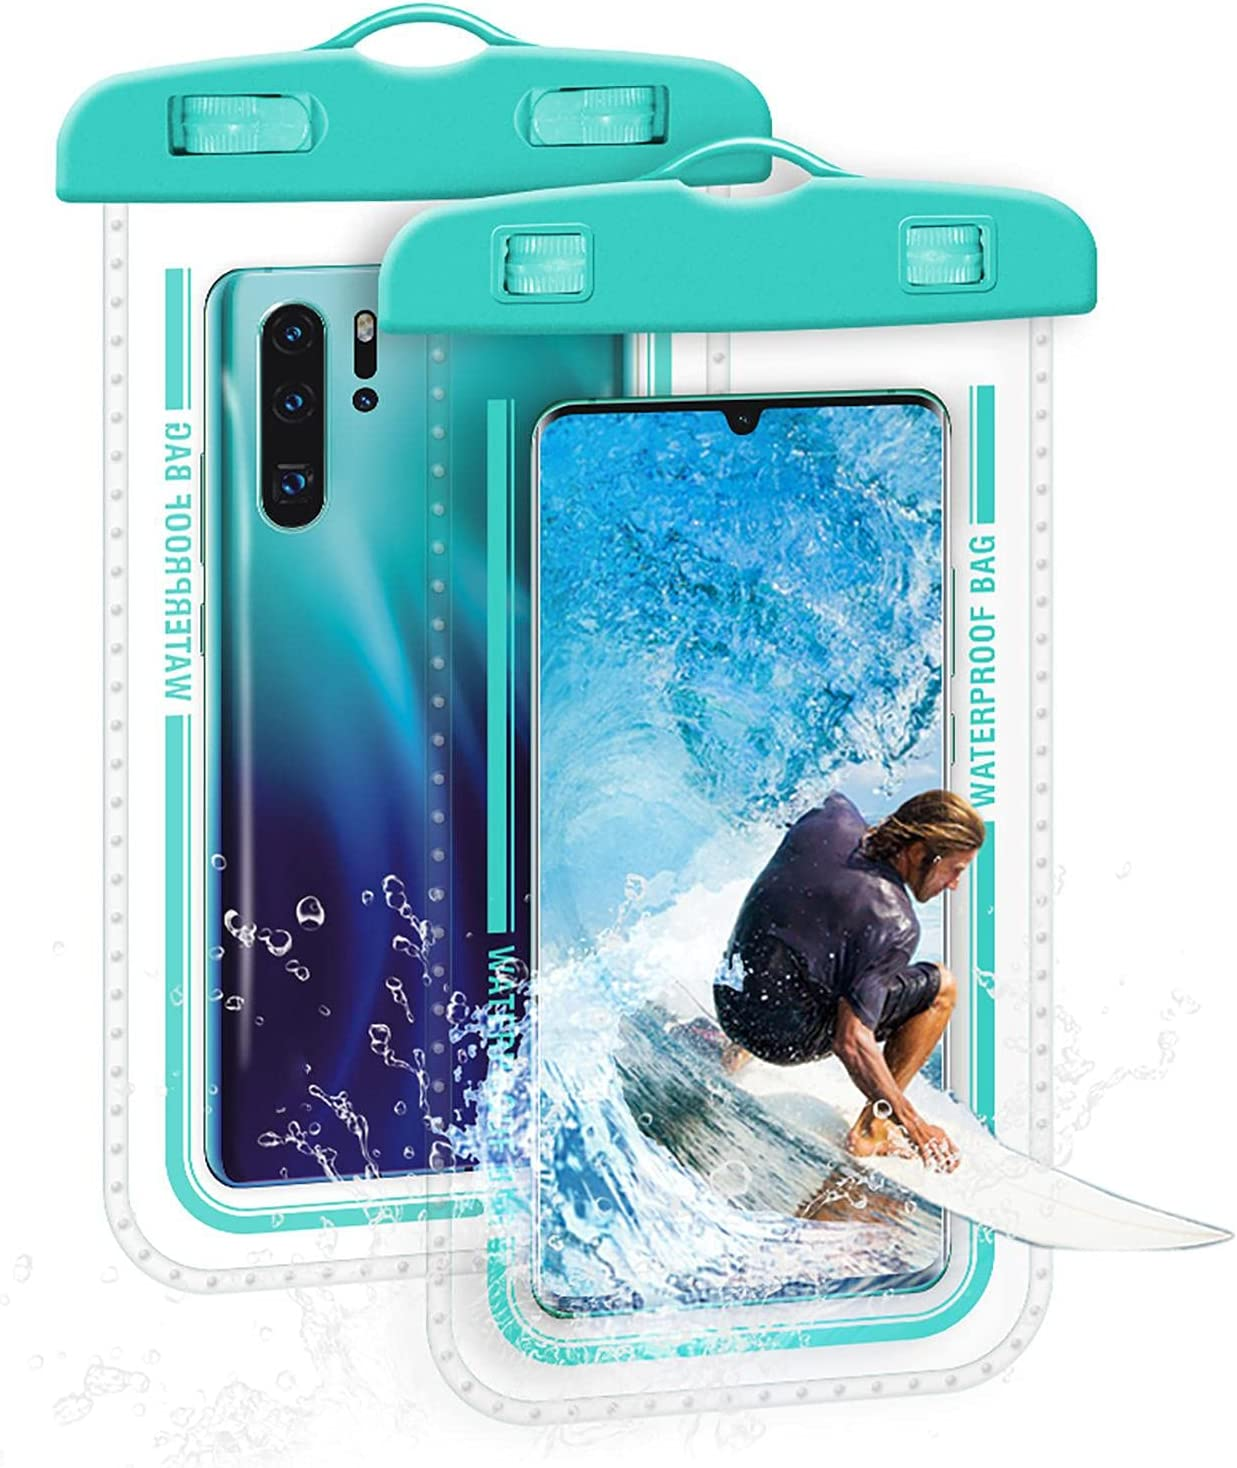 Mona43Henry Universal Waterproof Phone Bag, 7 Inches Waterproof Phone Pouch, Full-Screen Transparent Touch Sensitive Cellphone Dry Bag, Super Tightness Underwater Case Polite